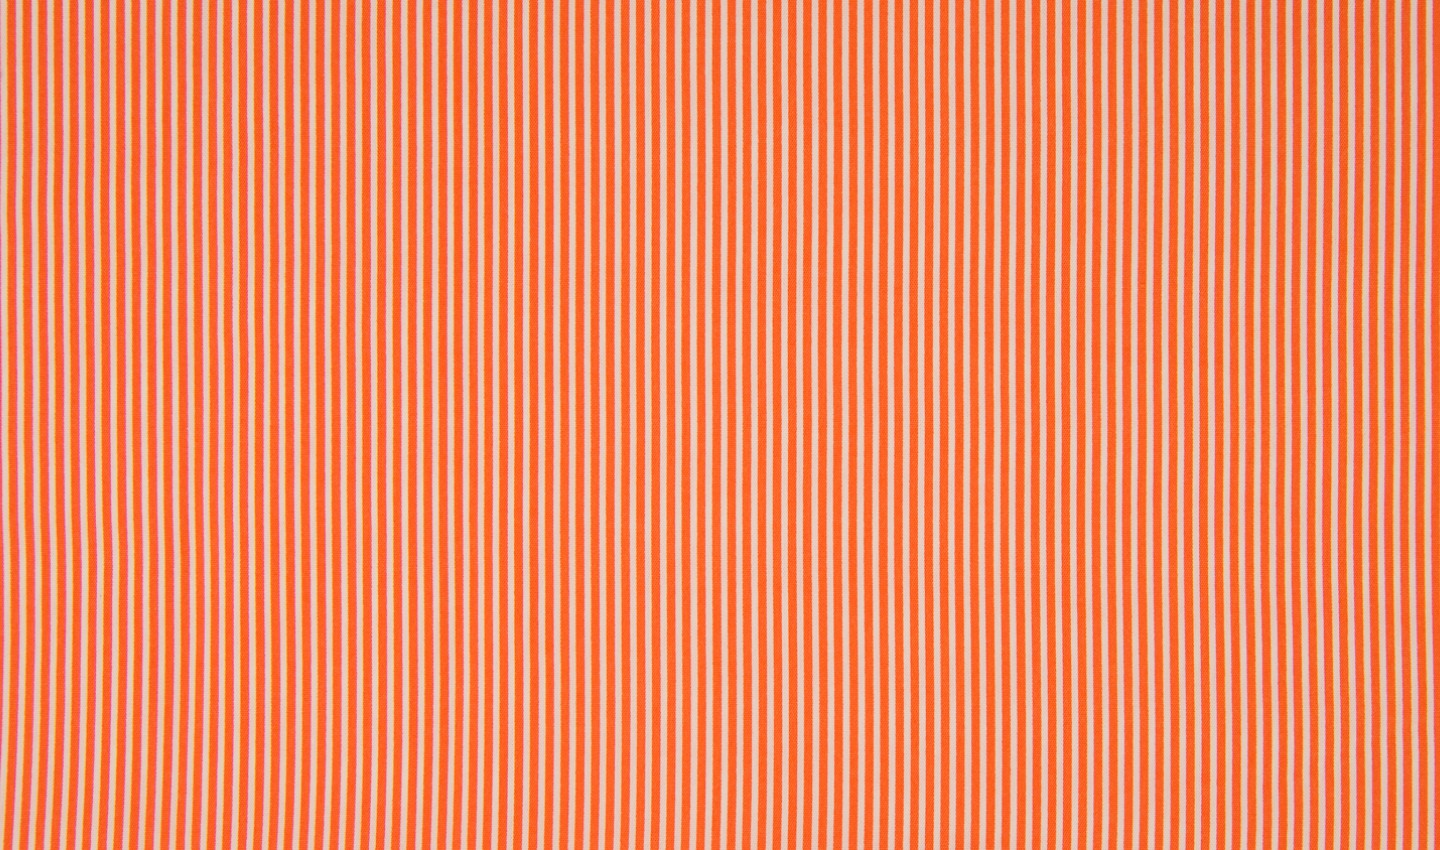 Minimals Stripes - orange-white